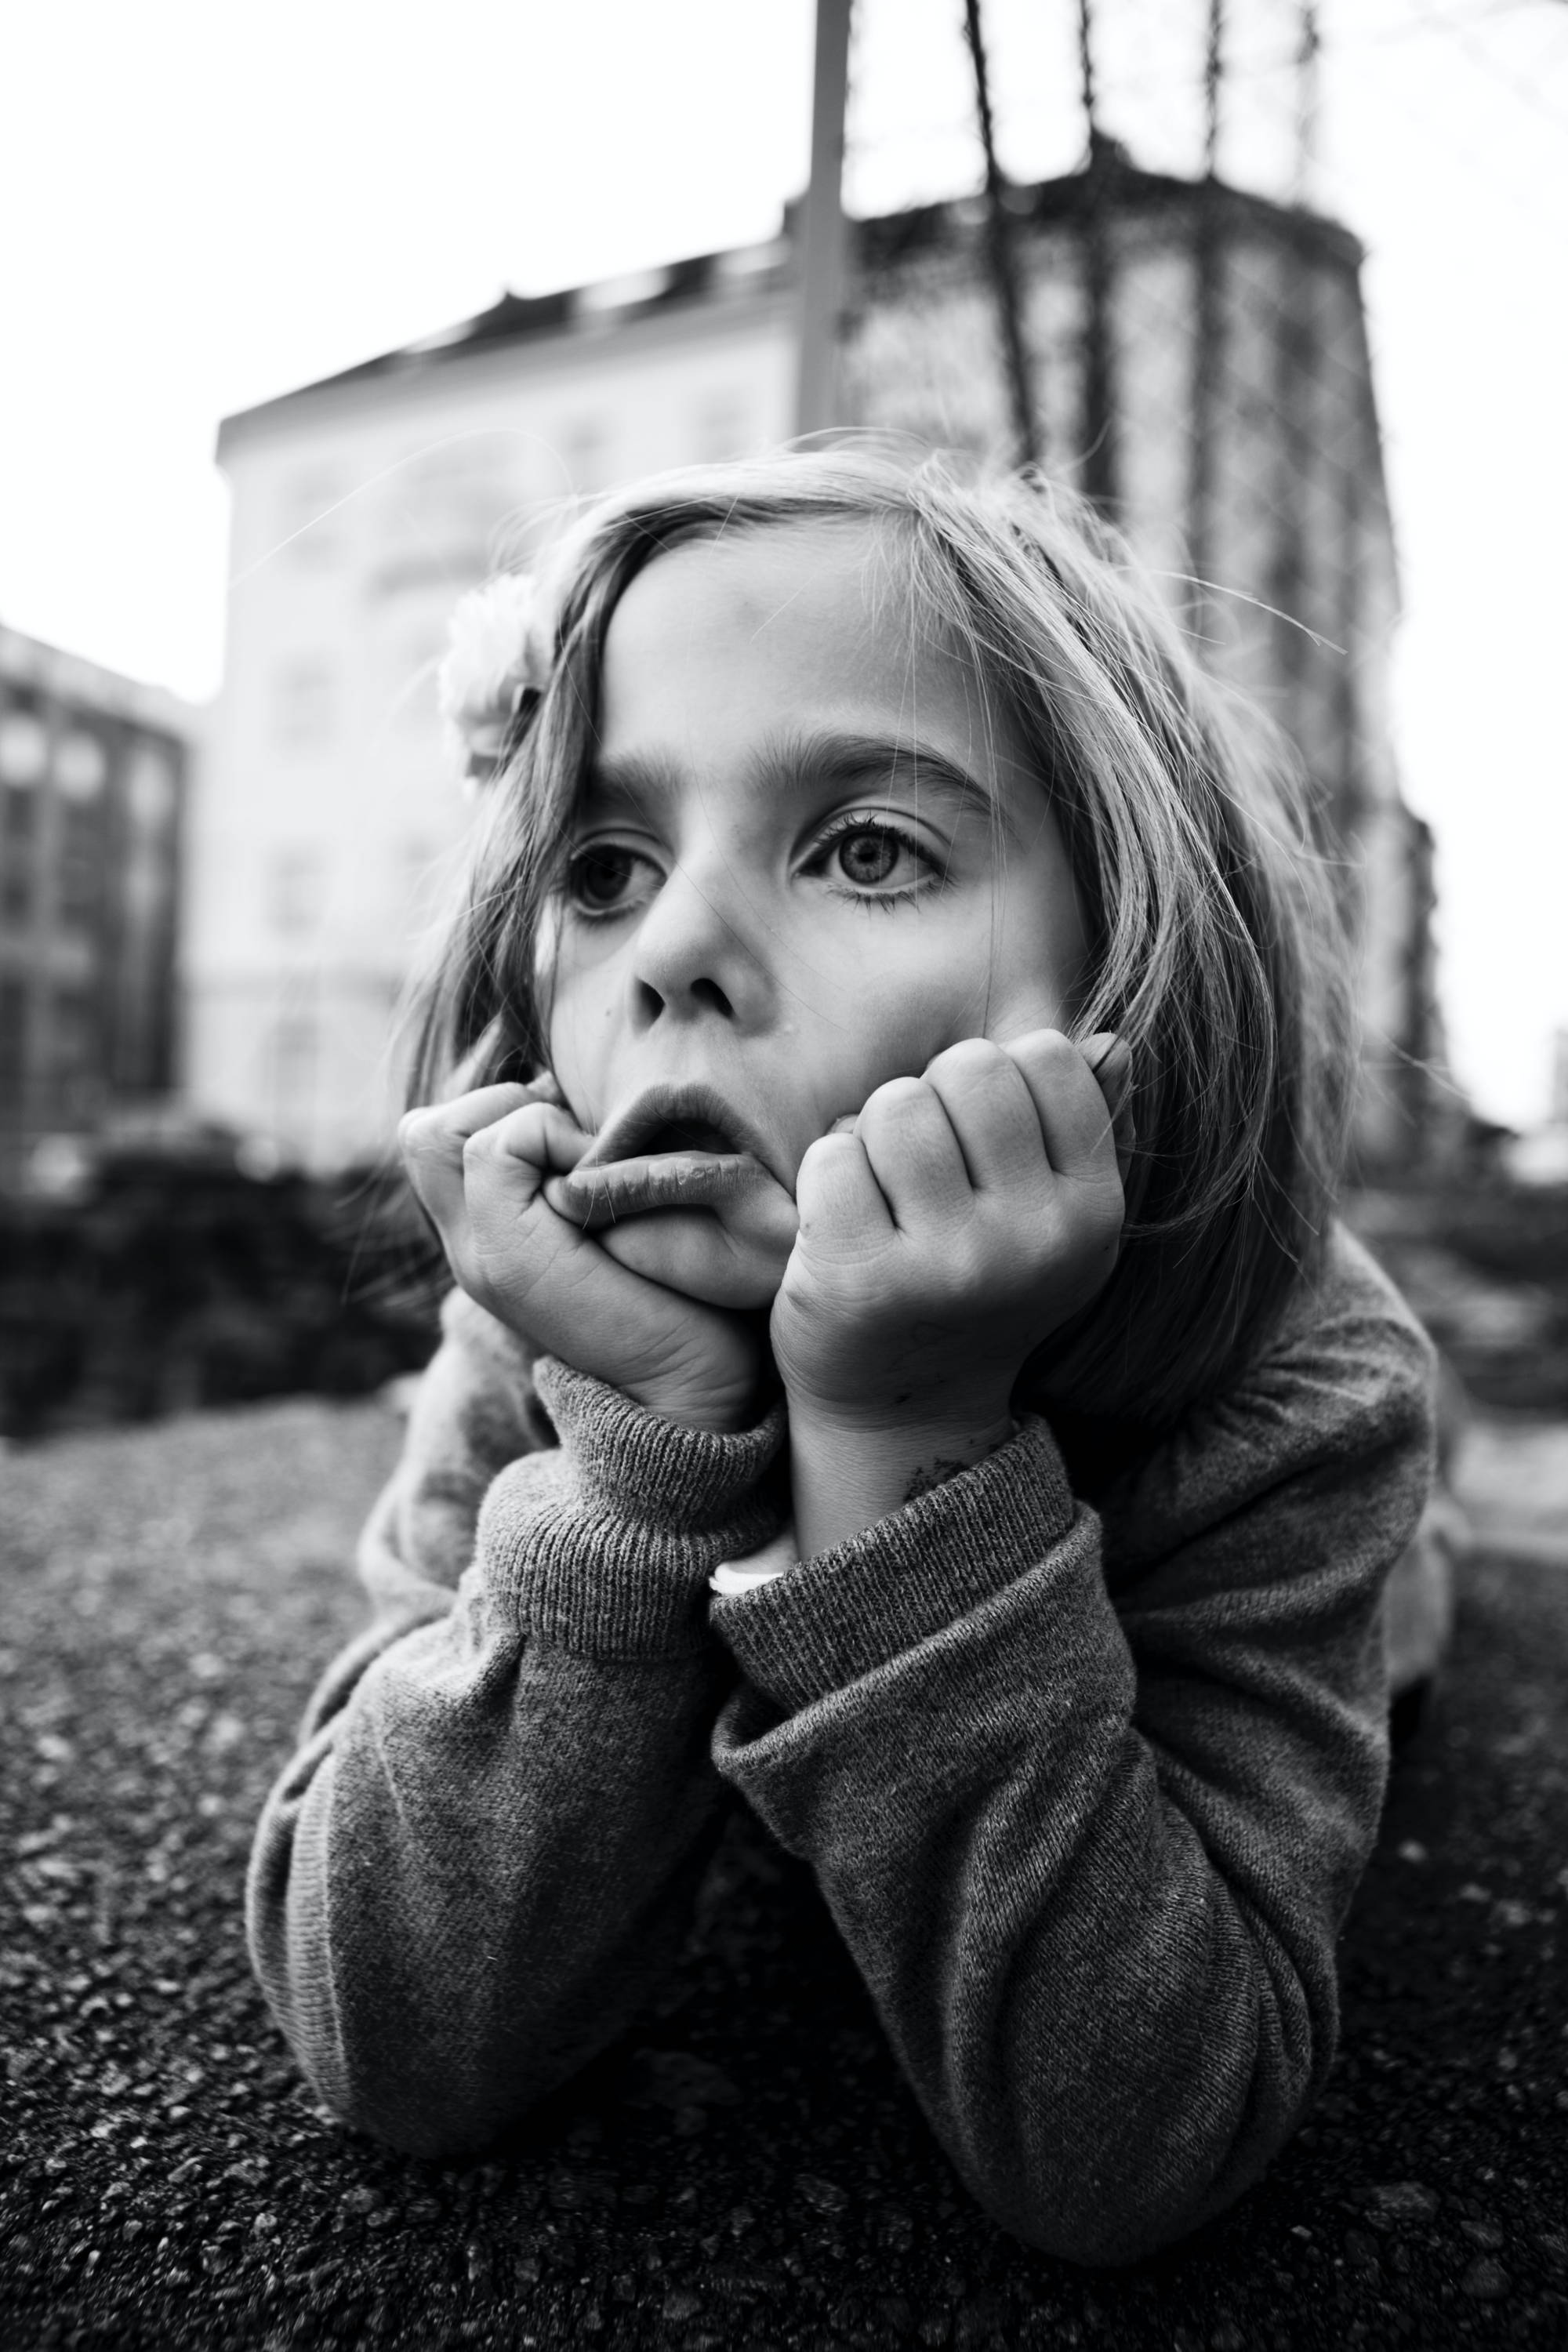 Black and white photo of a little girl resting her head in her hands looking anxious.